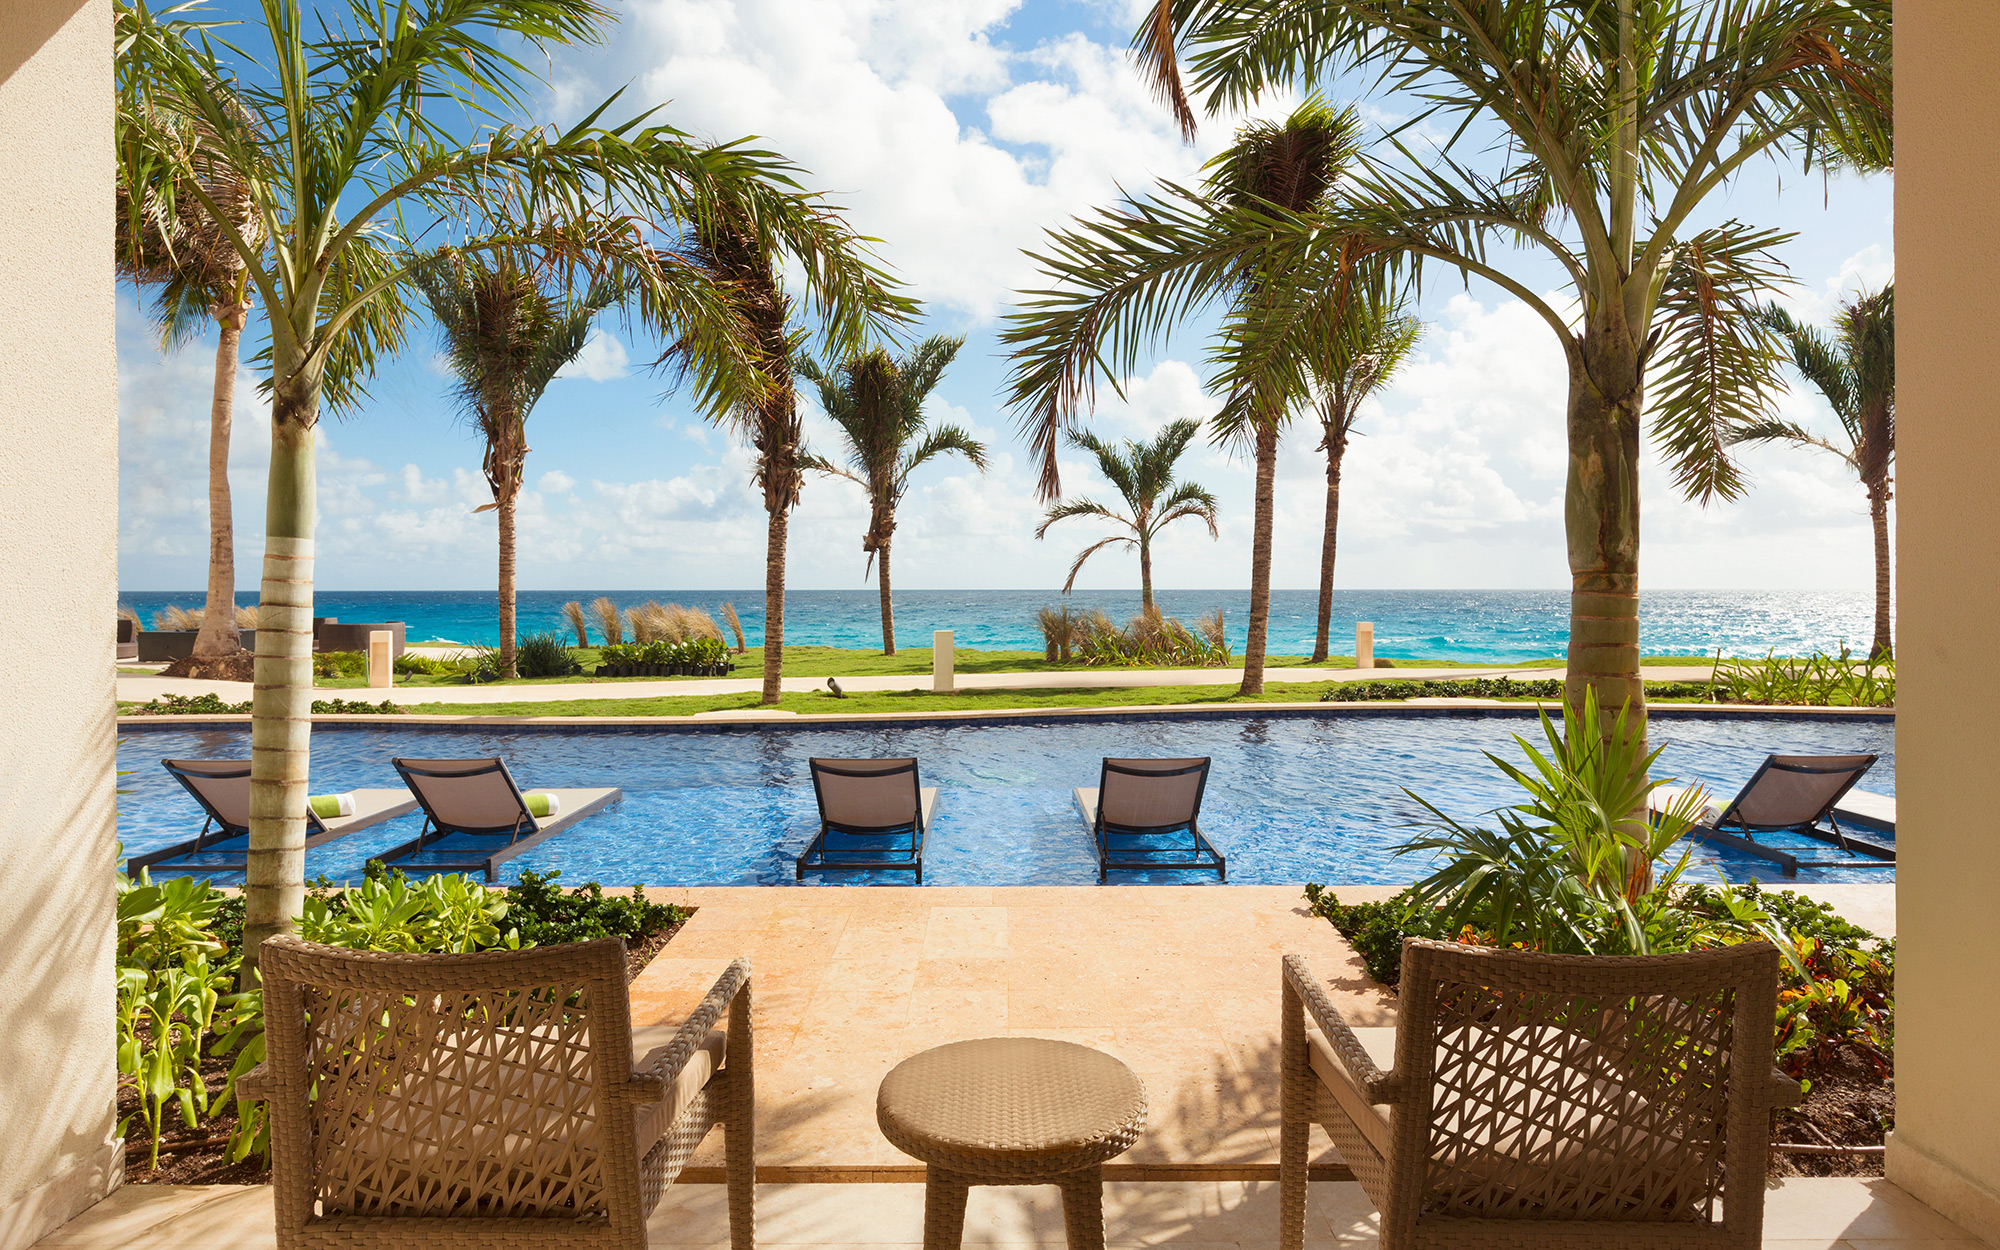 Caribbean Group Getaways: Hyatt Ziva Cancun in Mexico